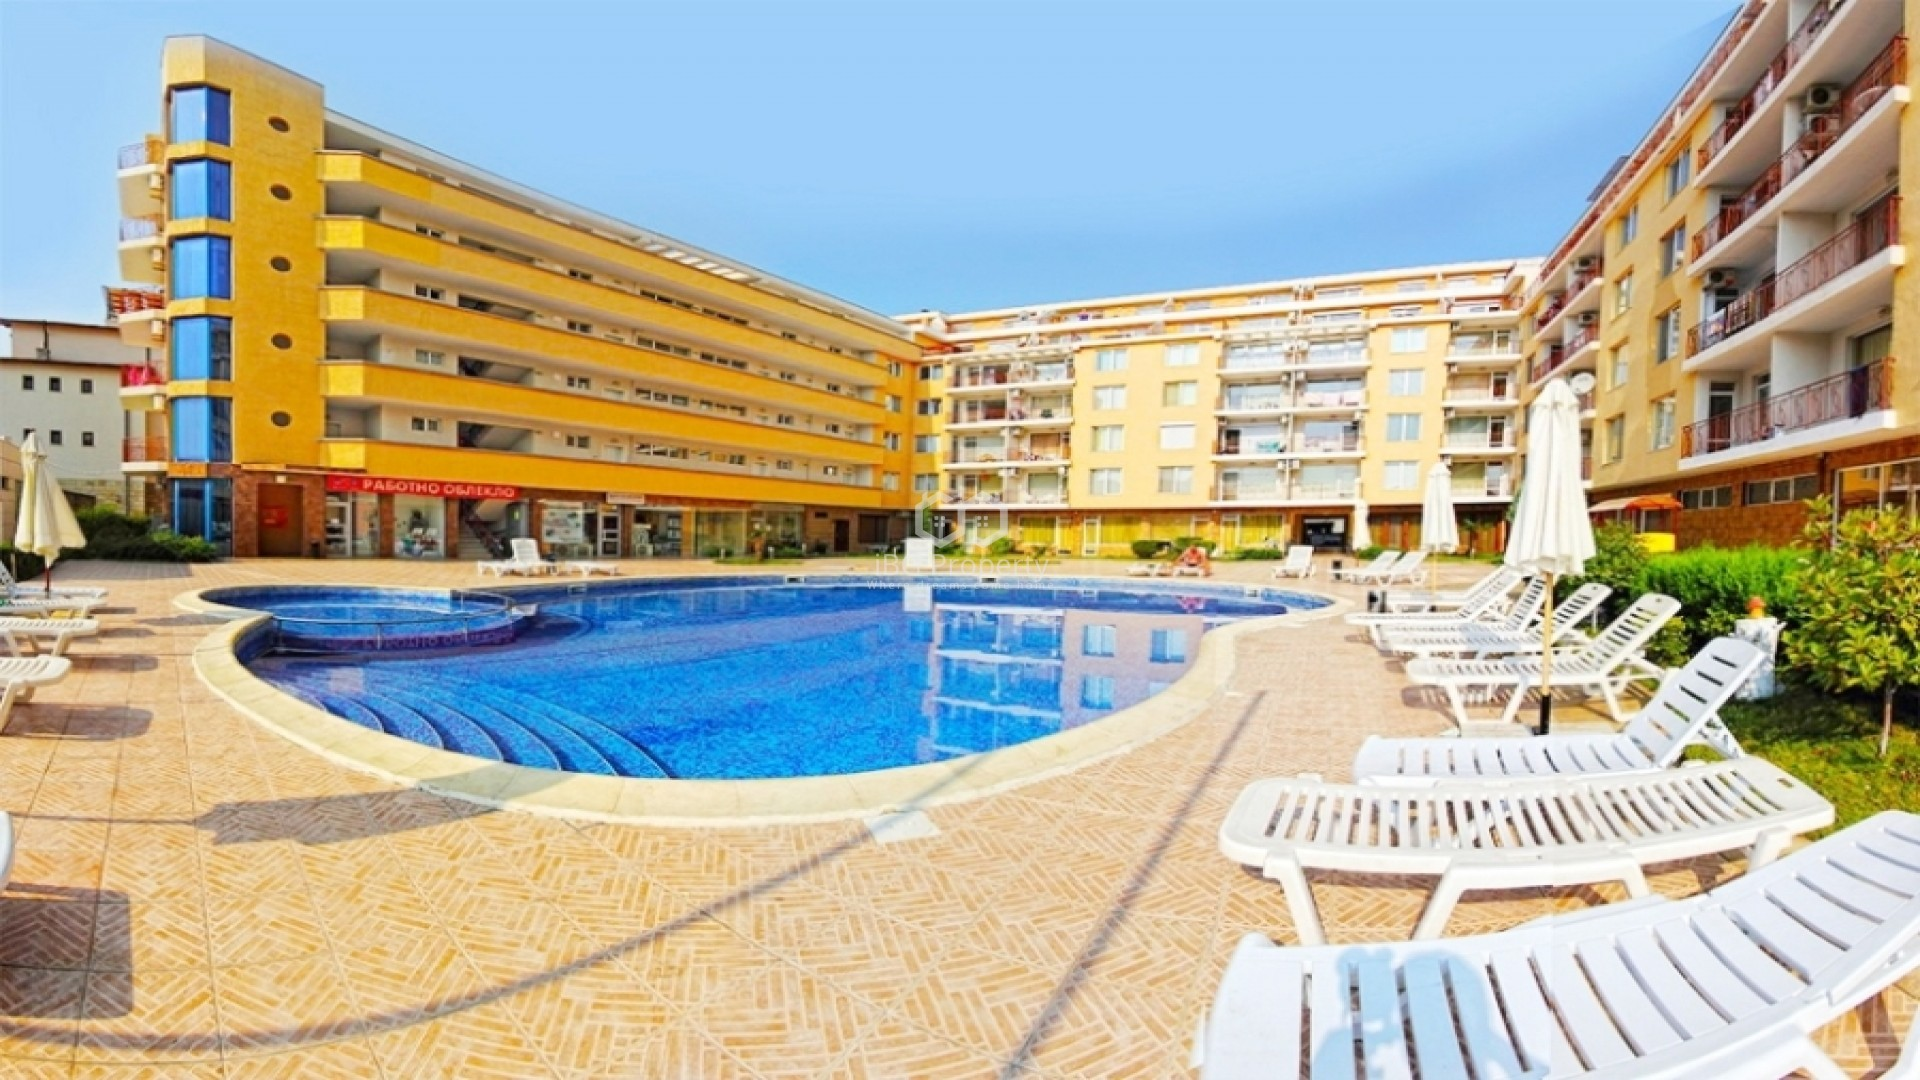 Two-bedroom apartment Sunny Beach 55,75 sq.m.